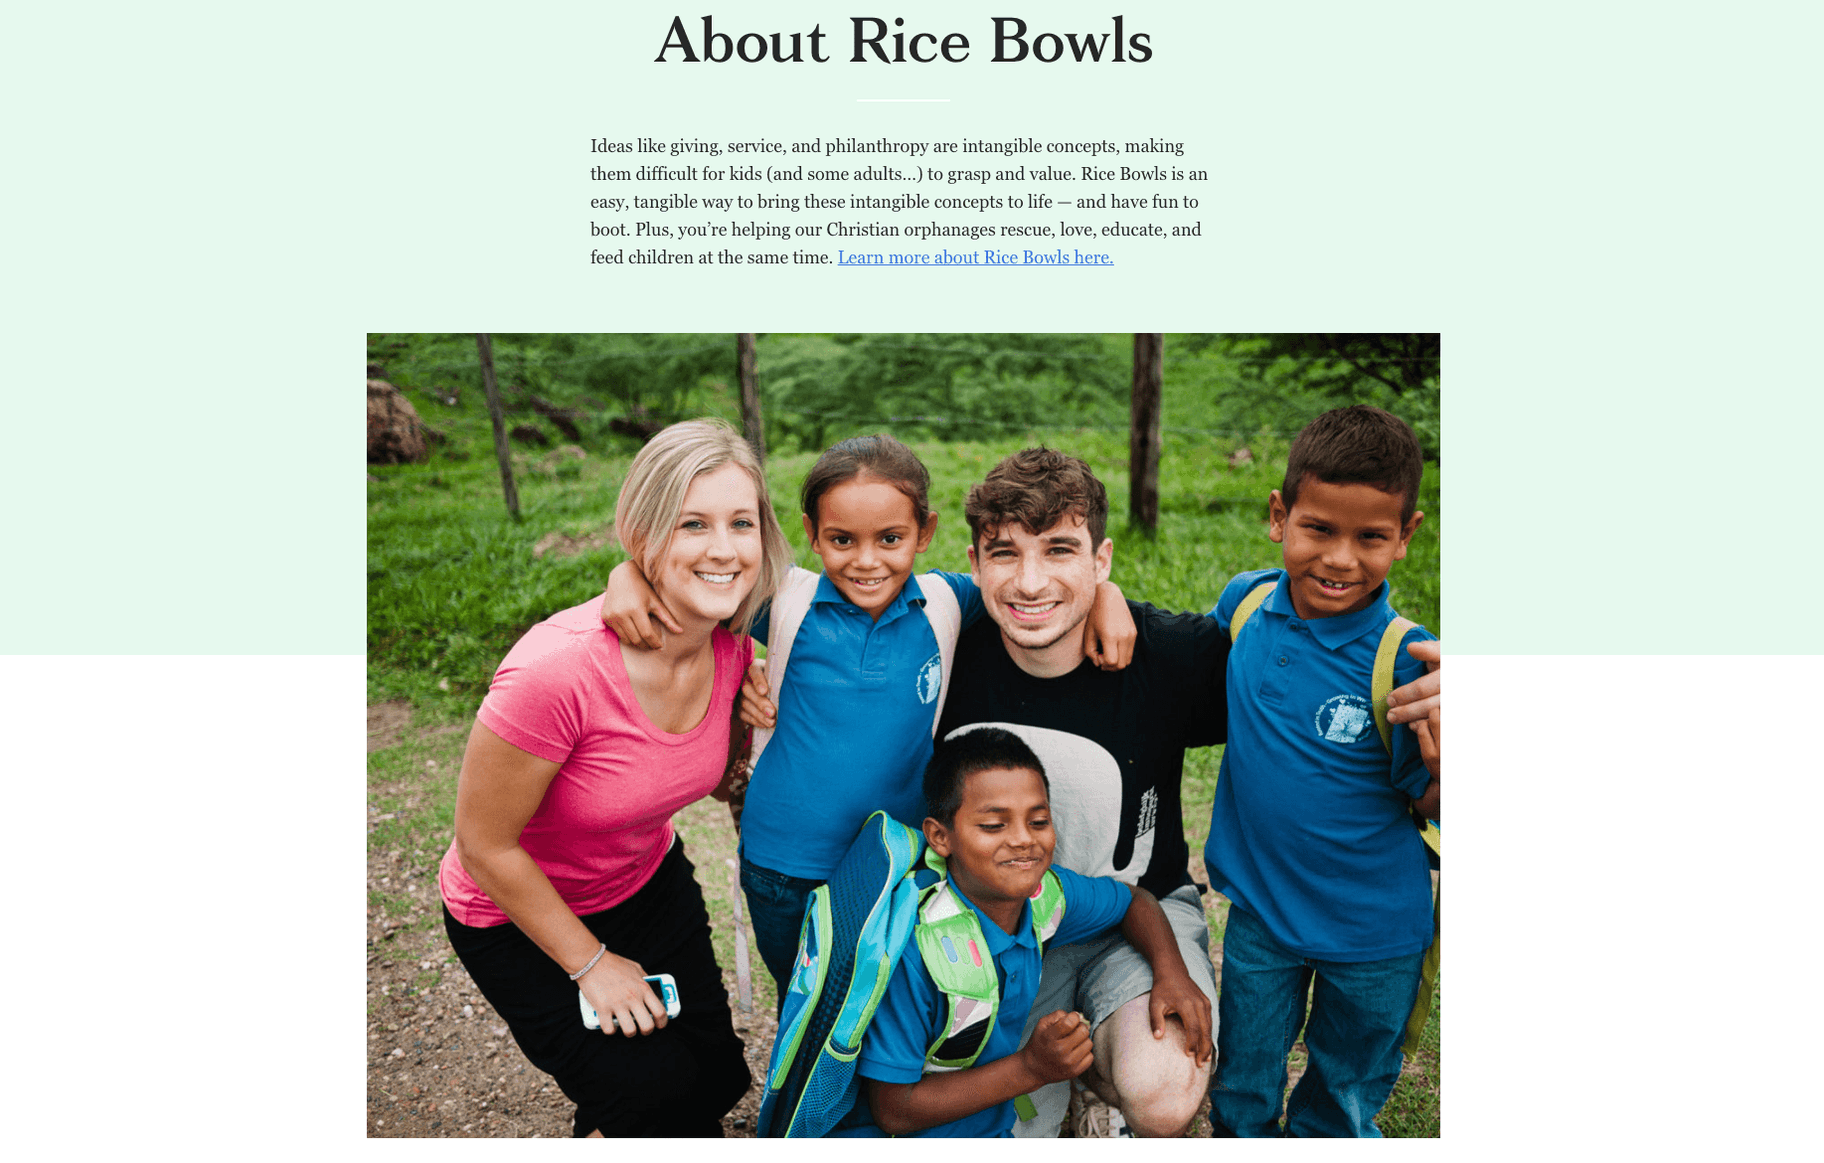 Ugmonk and Rice Bowls charity work